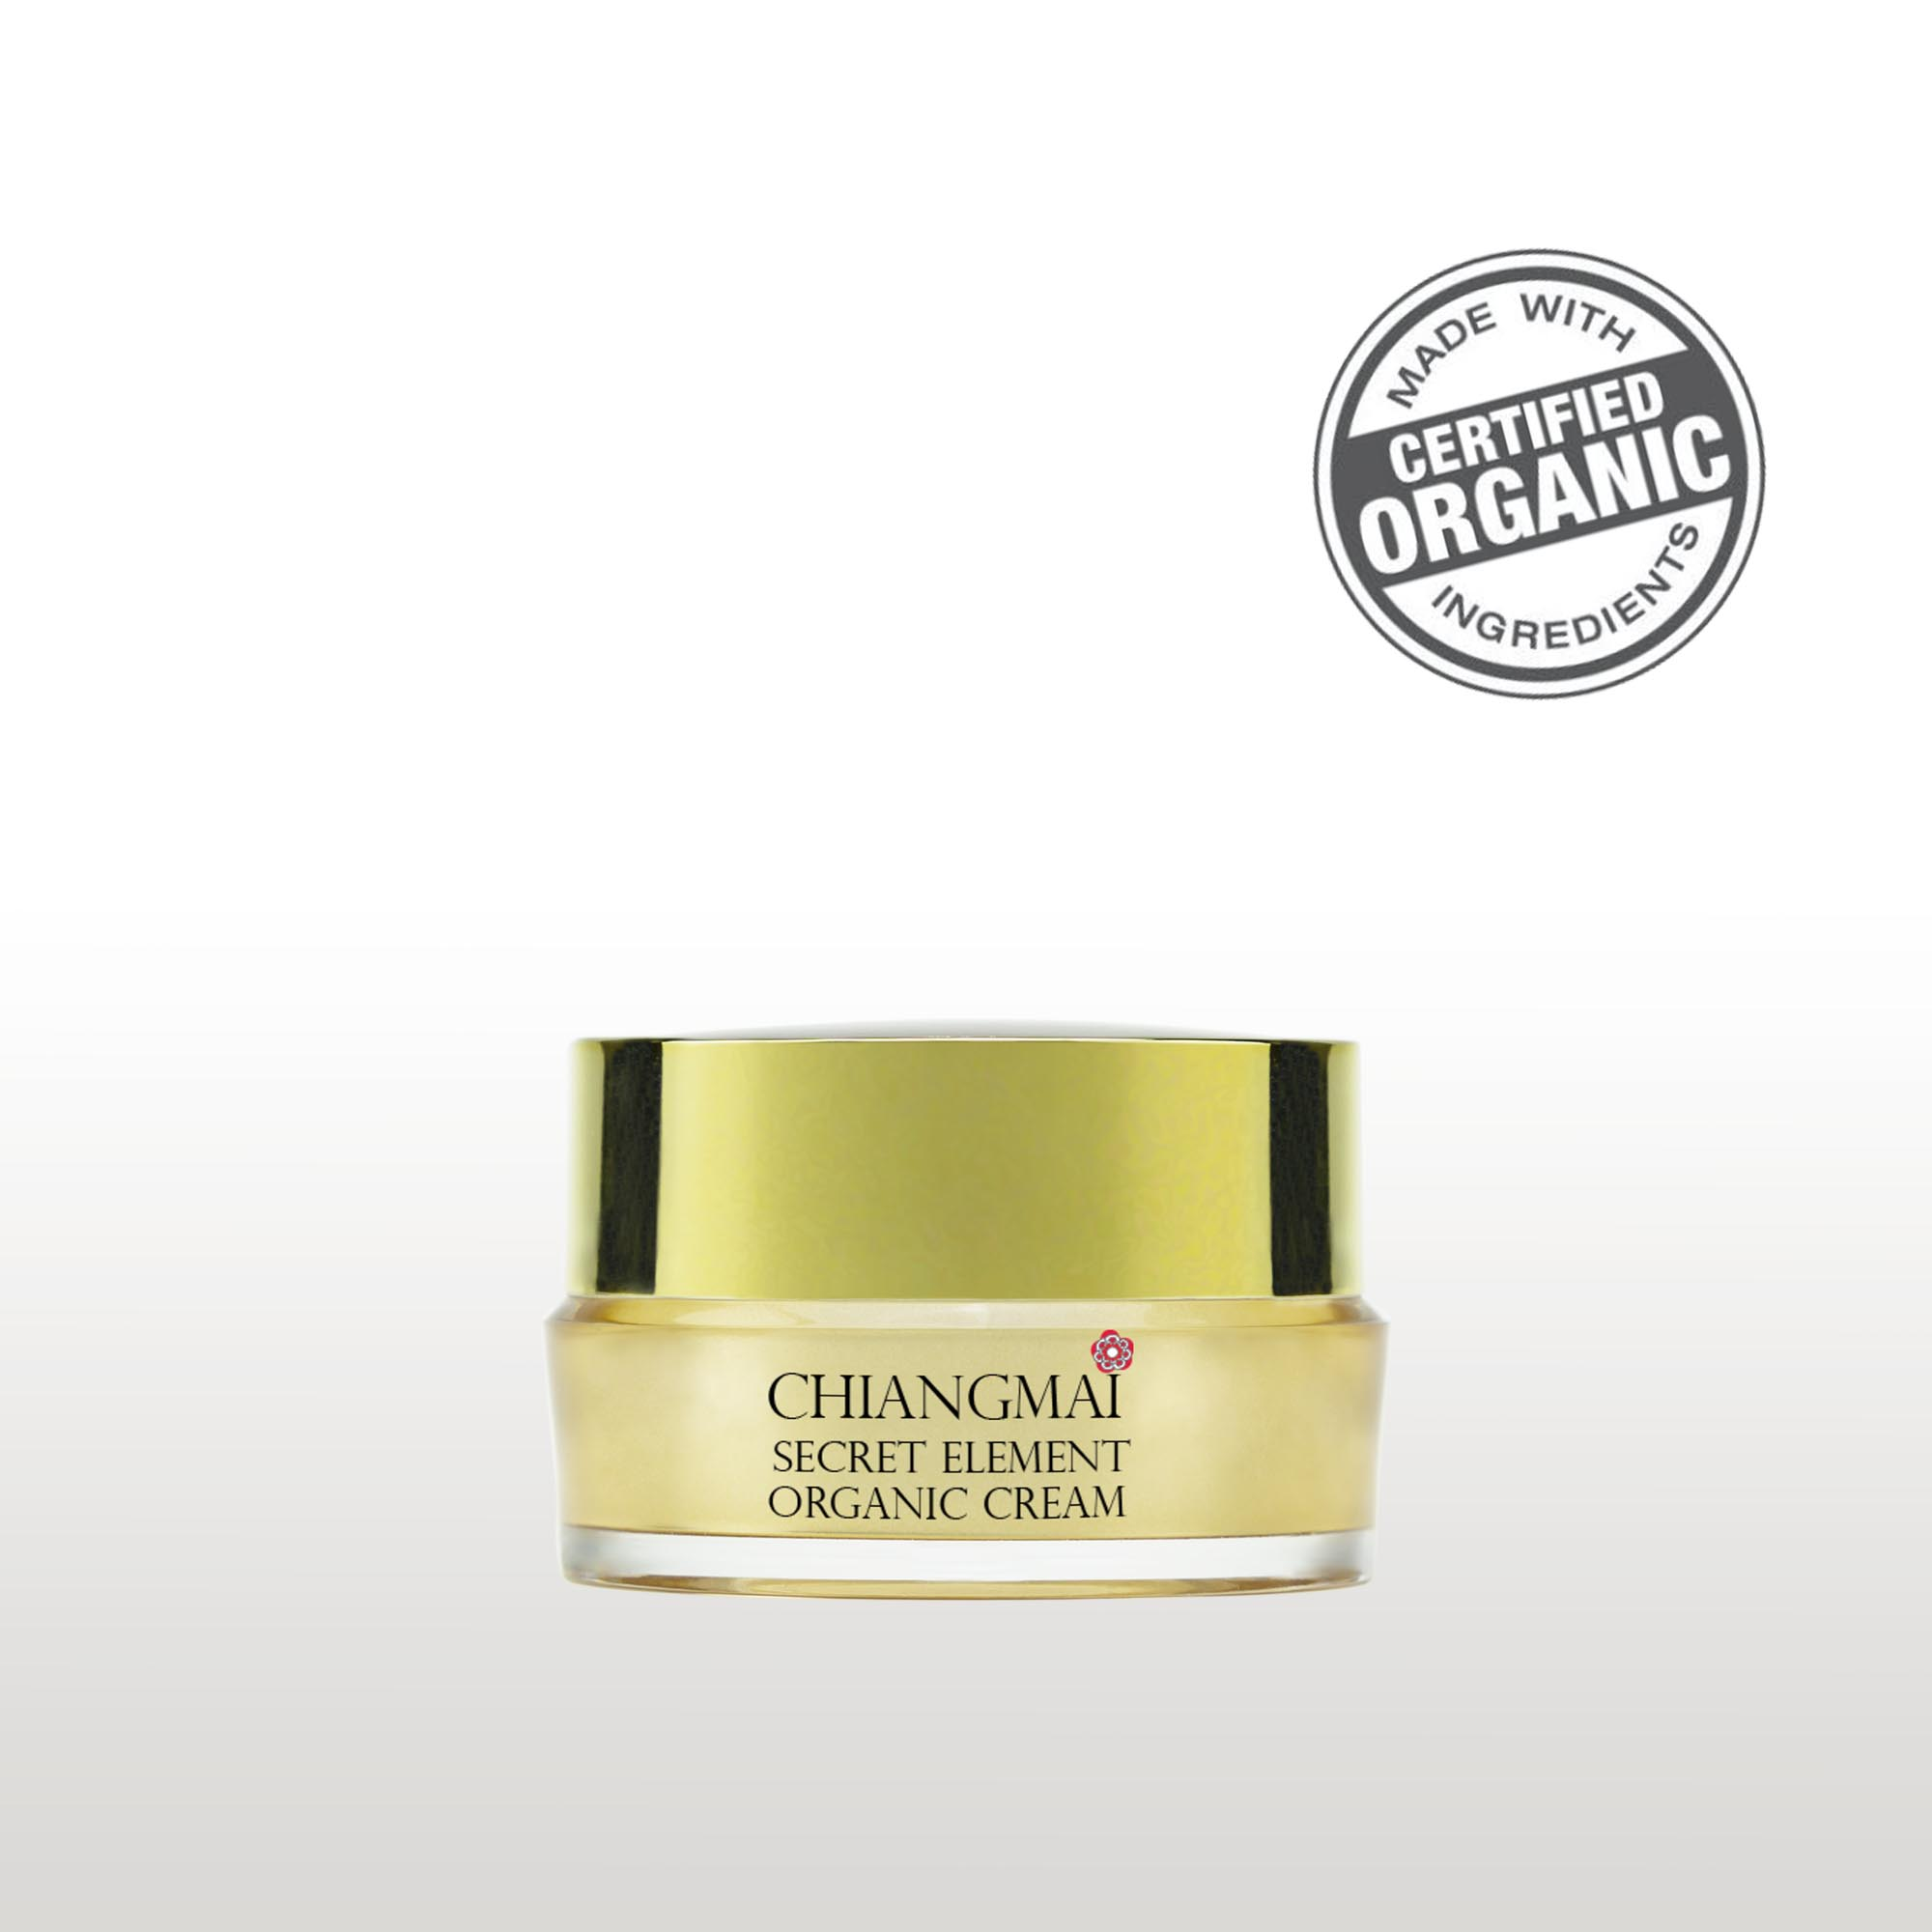 ChiangMai Secret Element Organic Cream